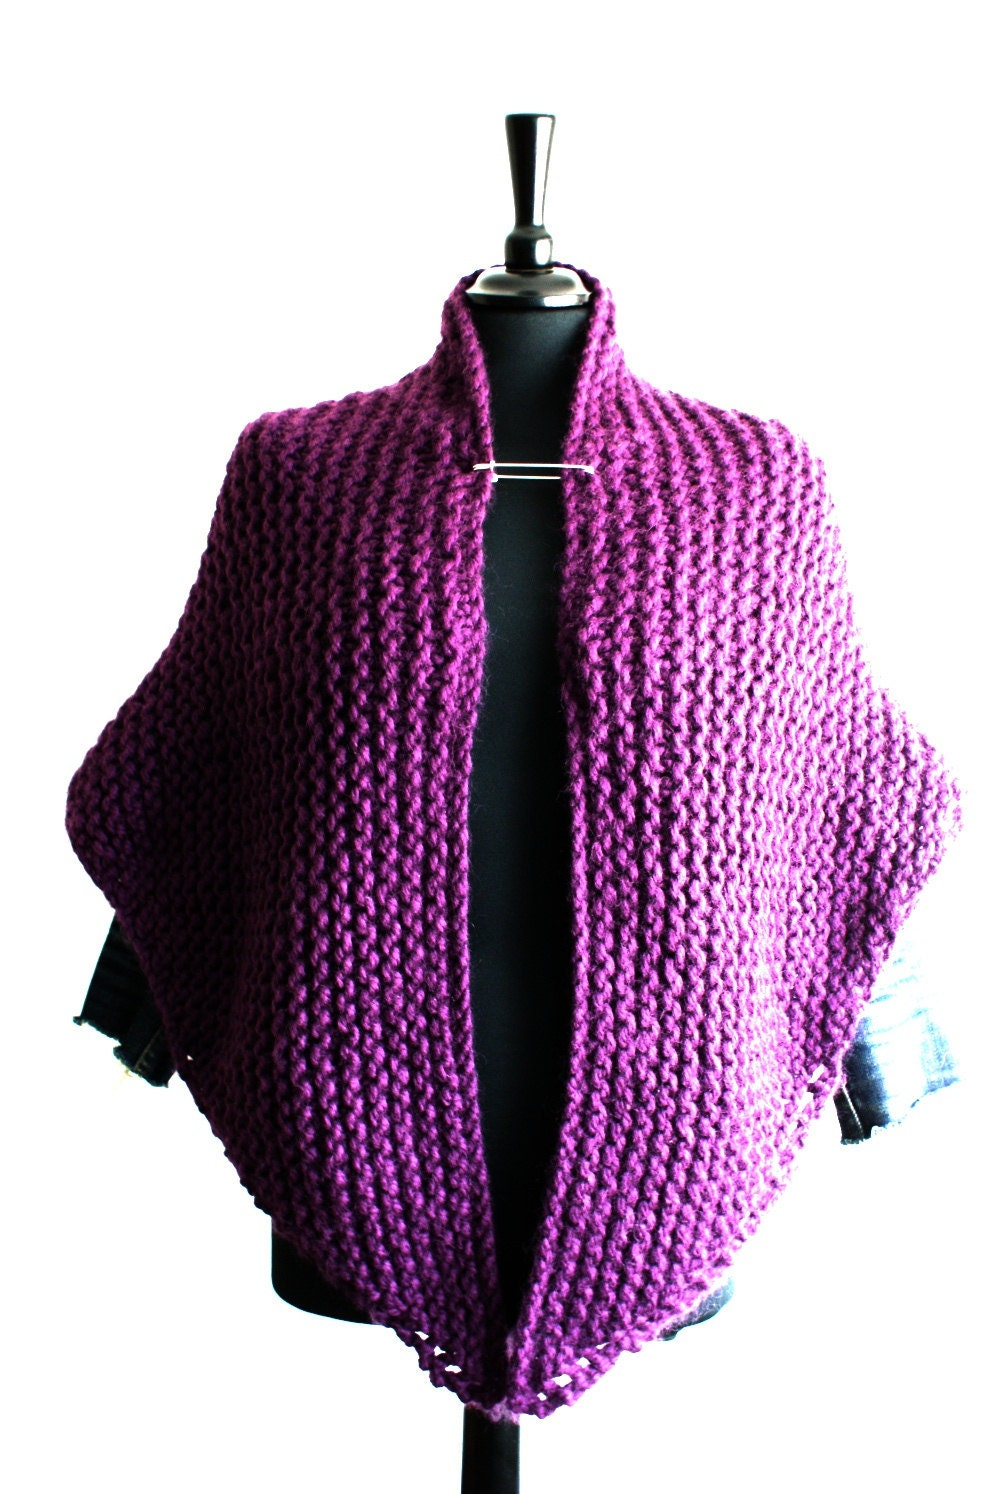 Knitting Patterns For Capes And Shawls : Knitting Pattern Cape Shawl Wrap Medium & by eclecticmixknitwear